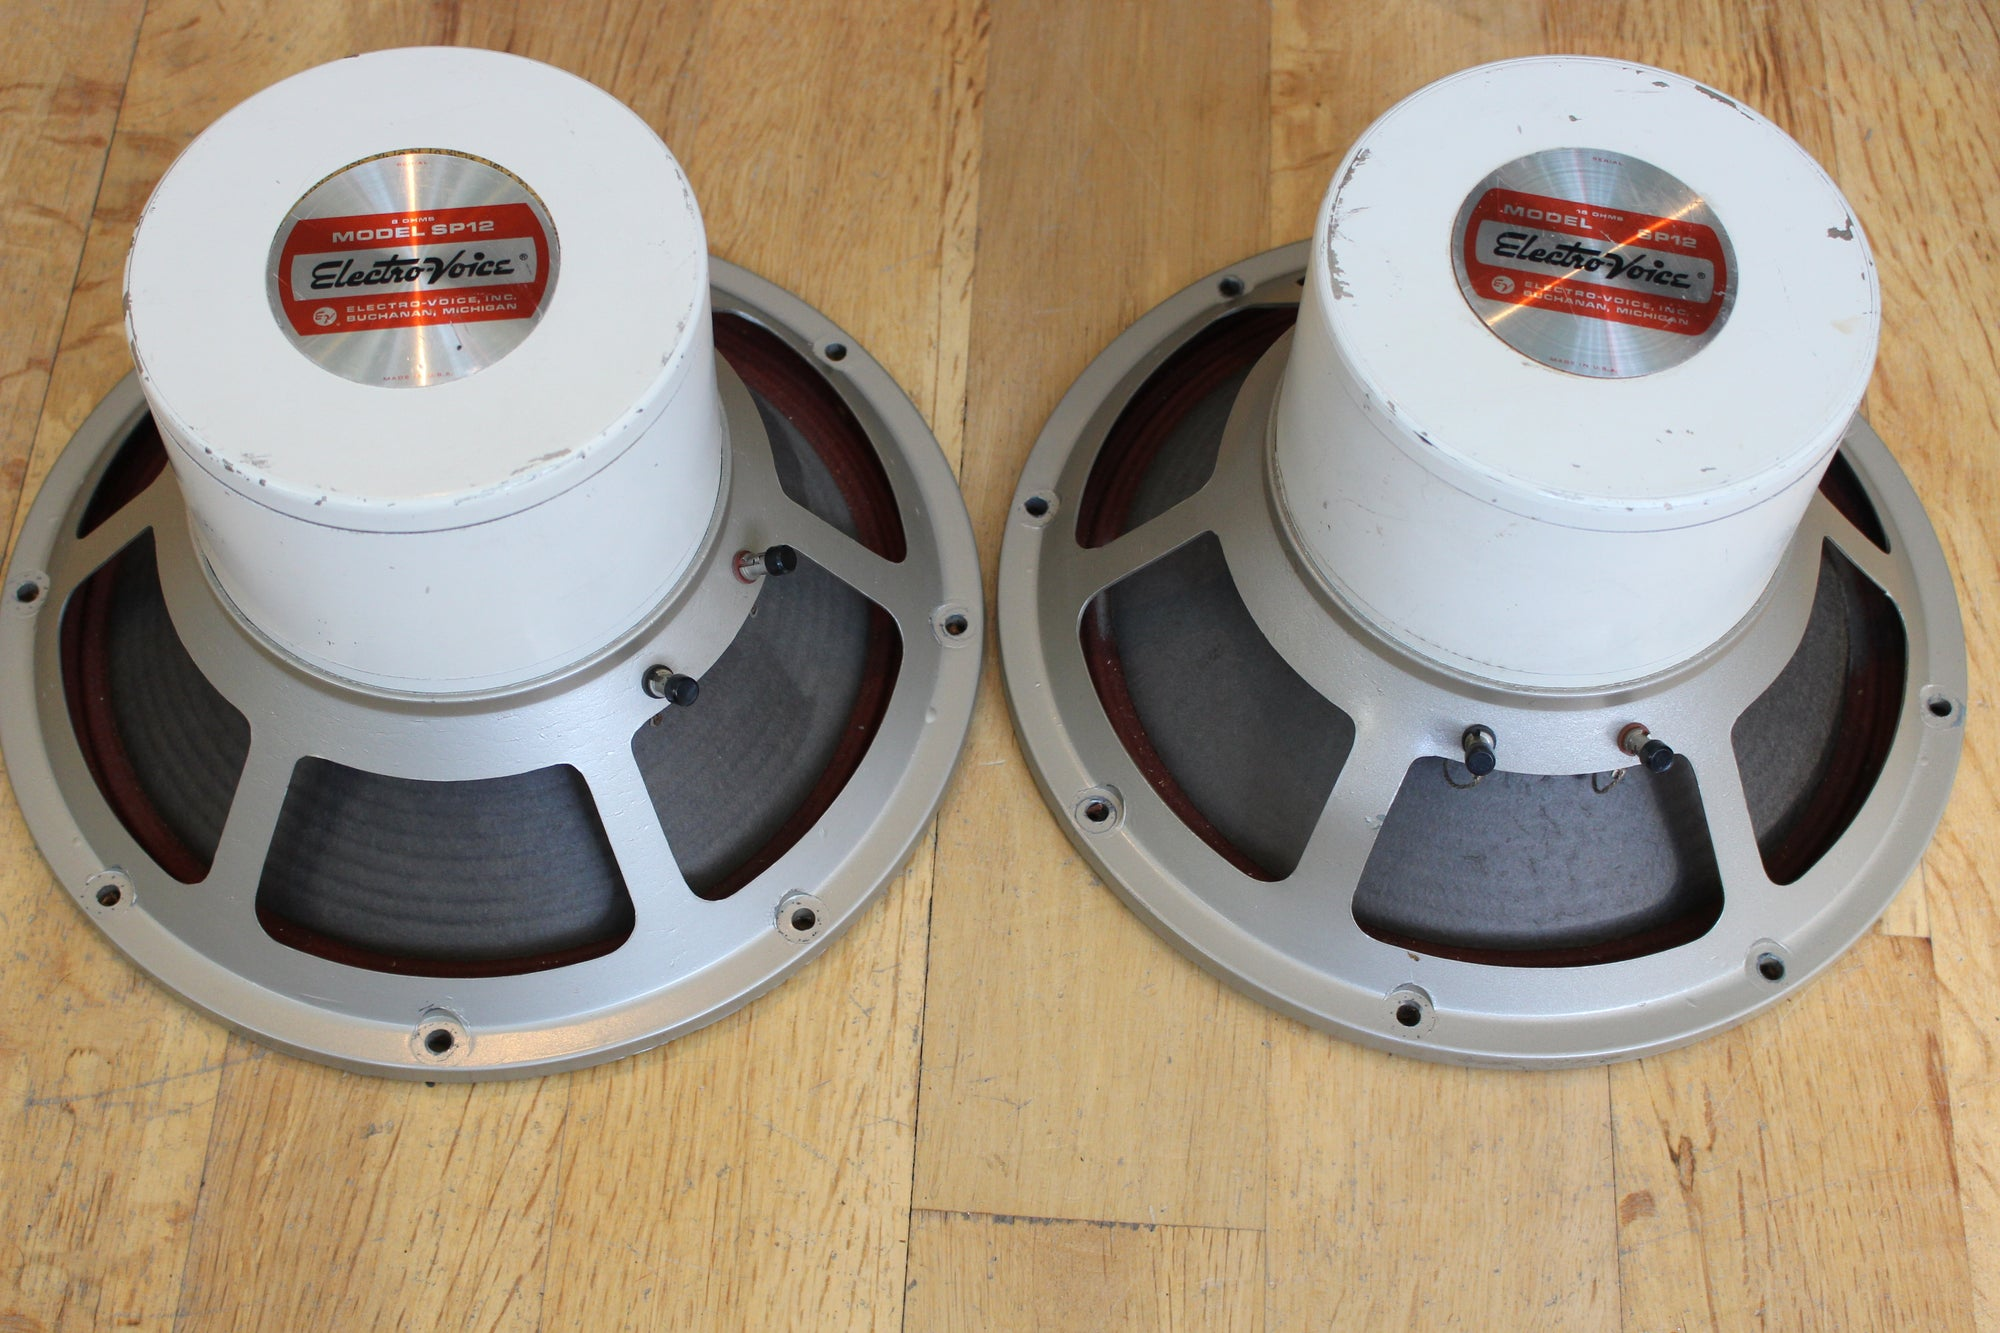 "Electro Voice SP12 speaker pair 12"" - Vintage Guitars"